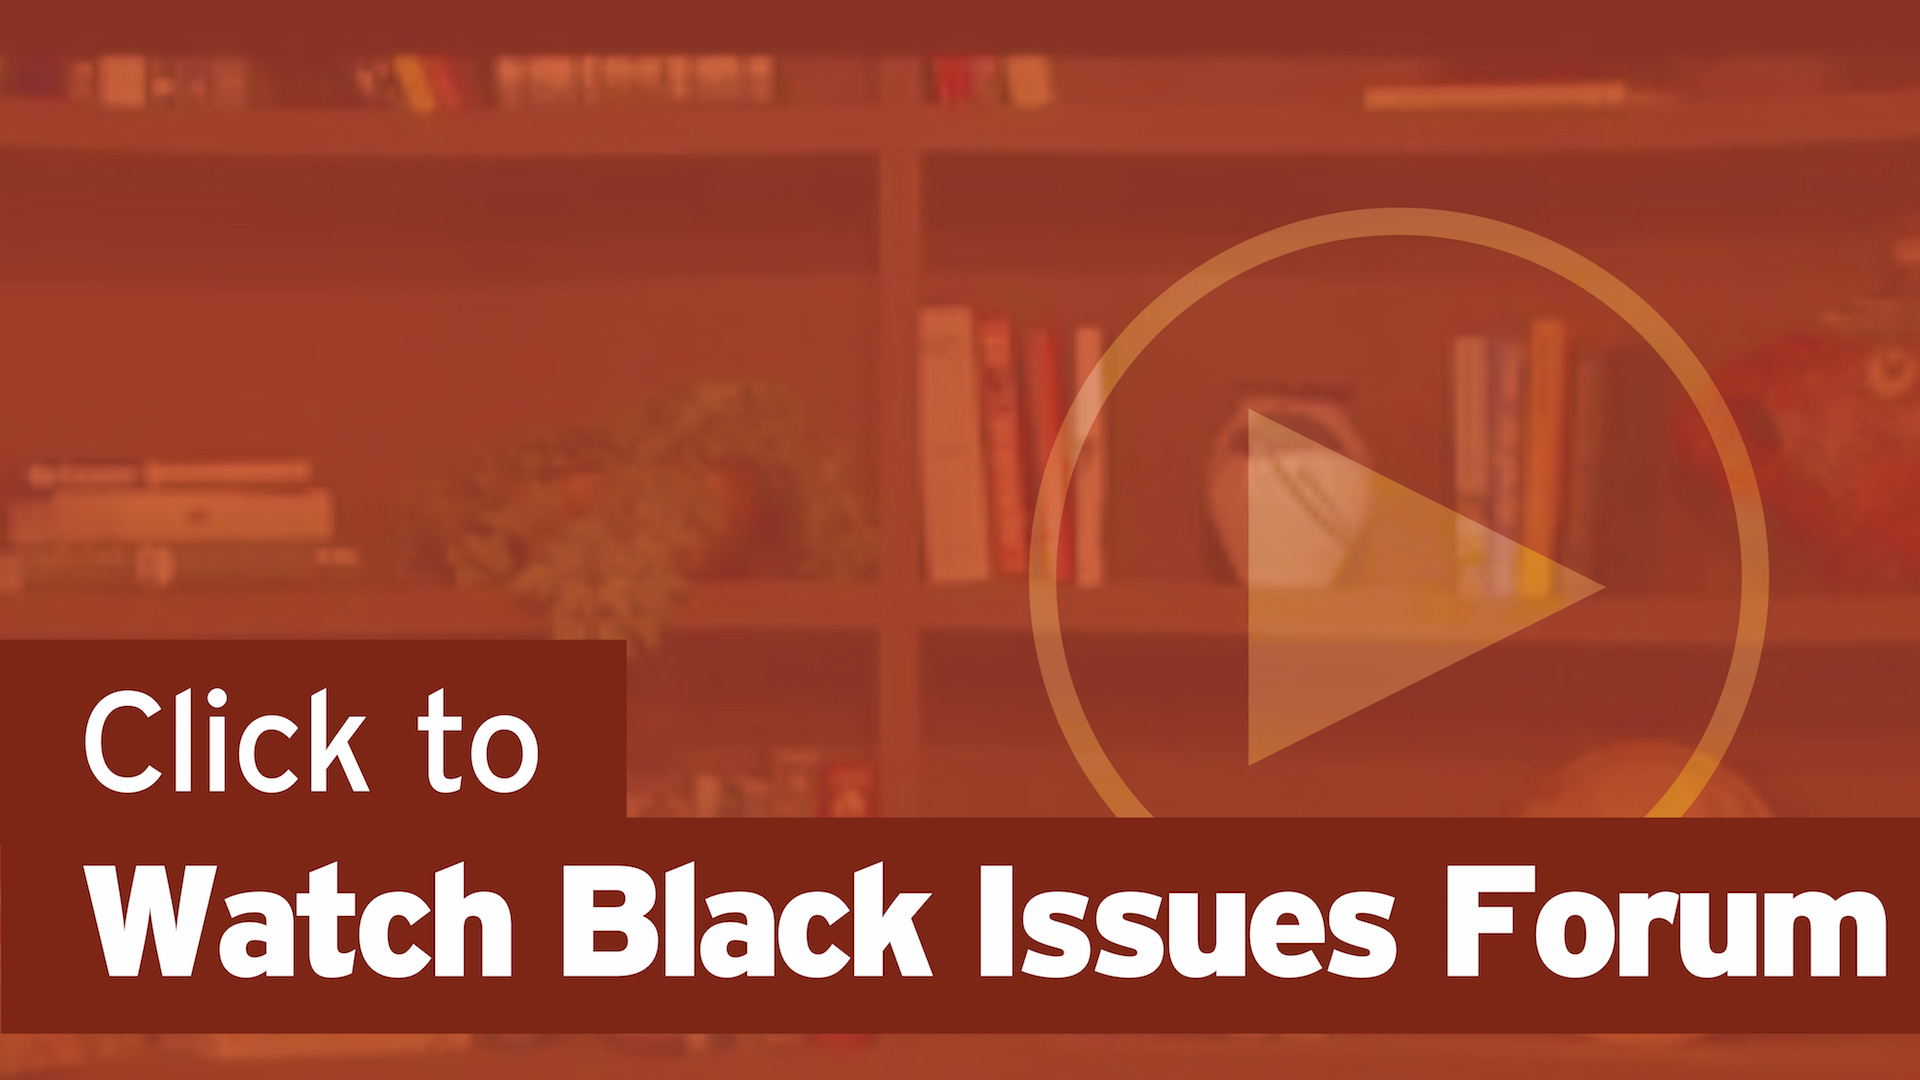 Click Here to Watch Black Issues Forum